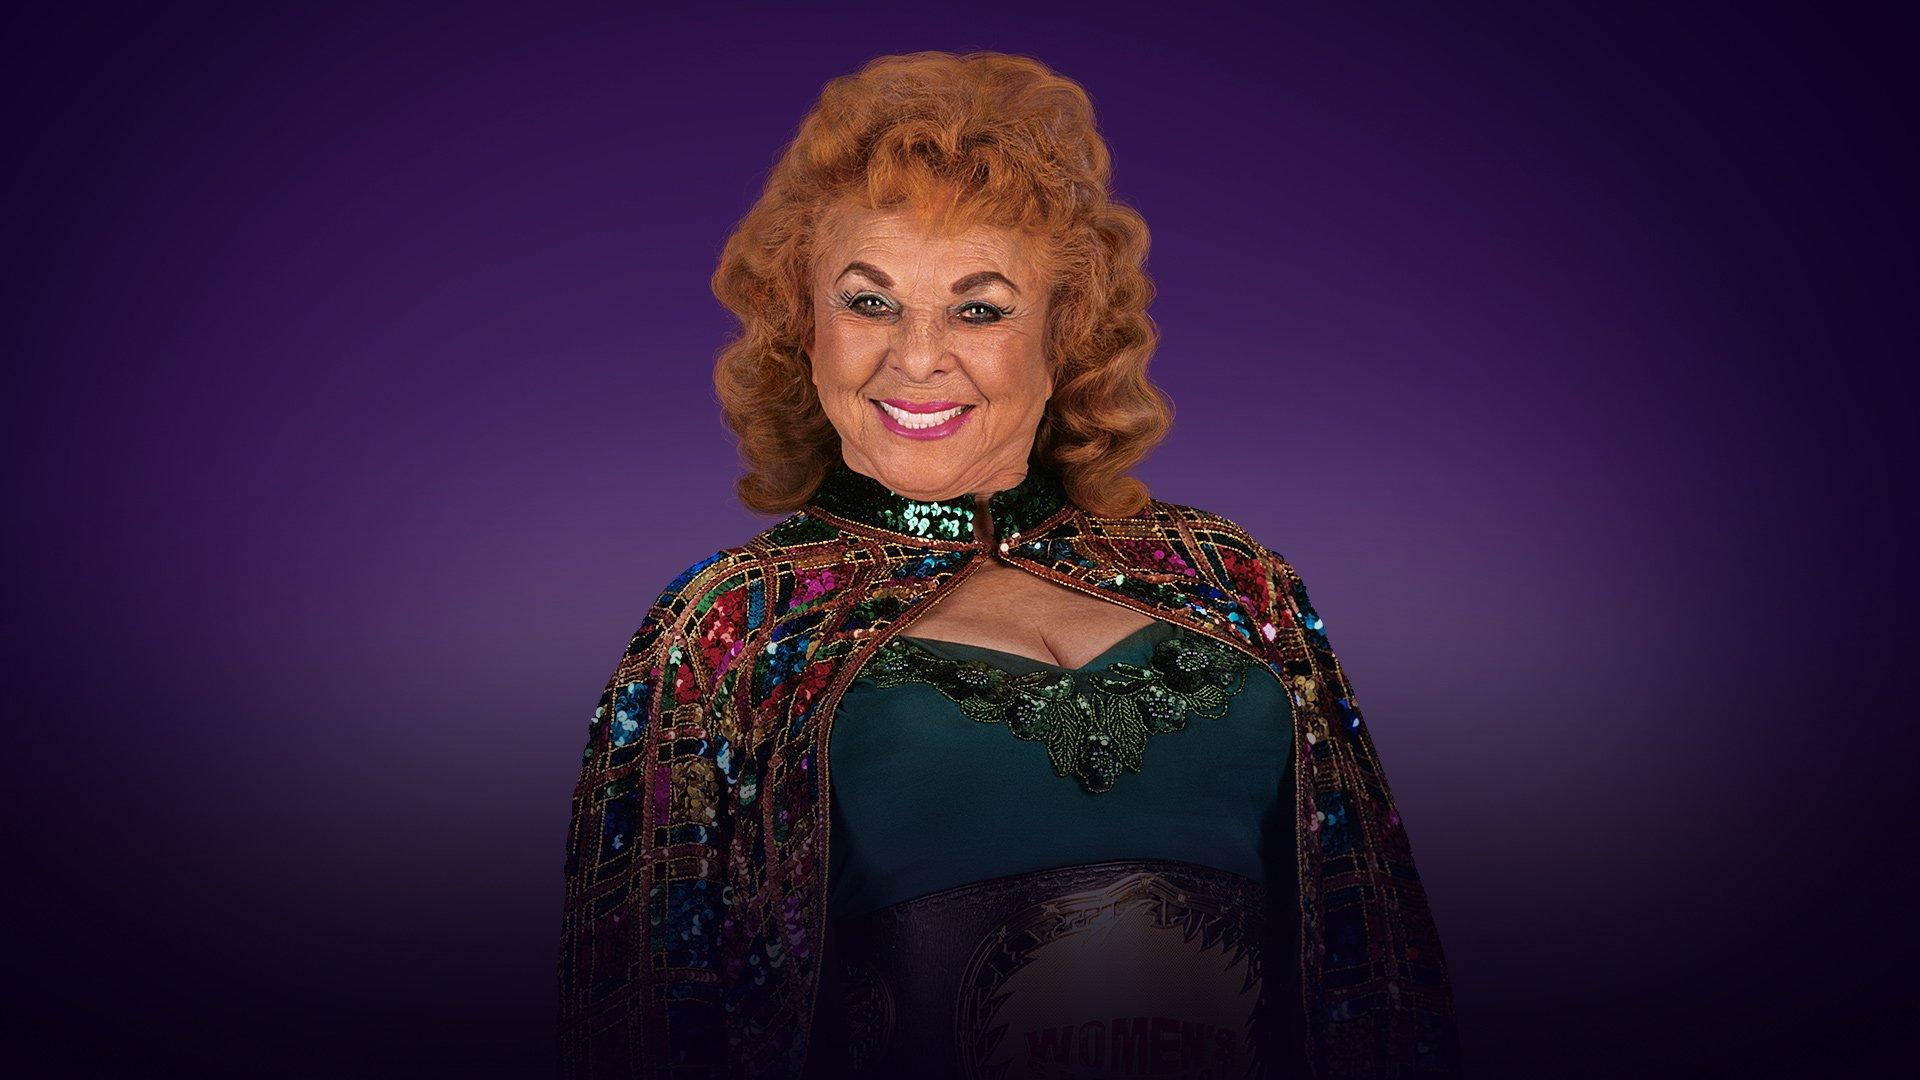 WWE Announces Fabulous Moolah Memorial Battle Royal Name Change